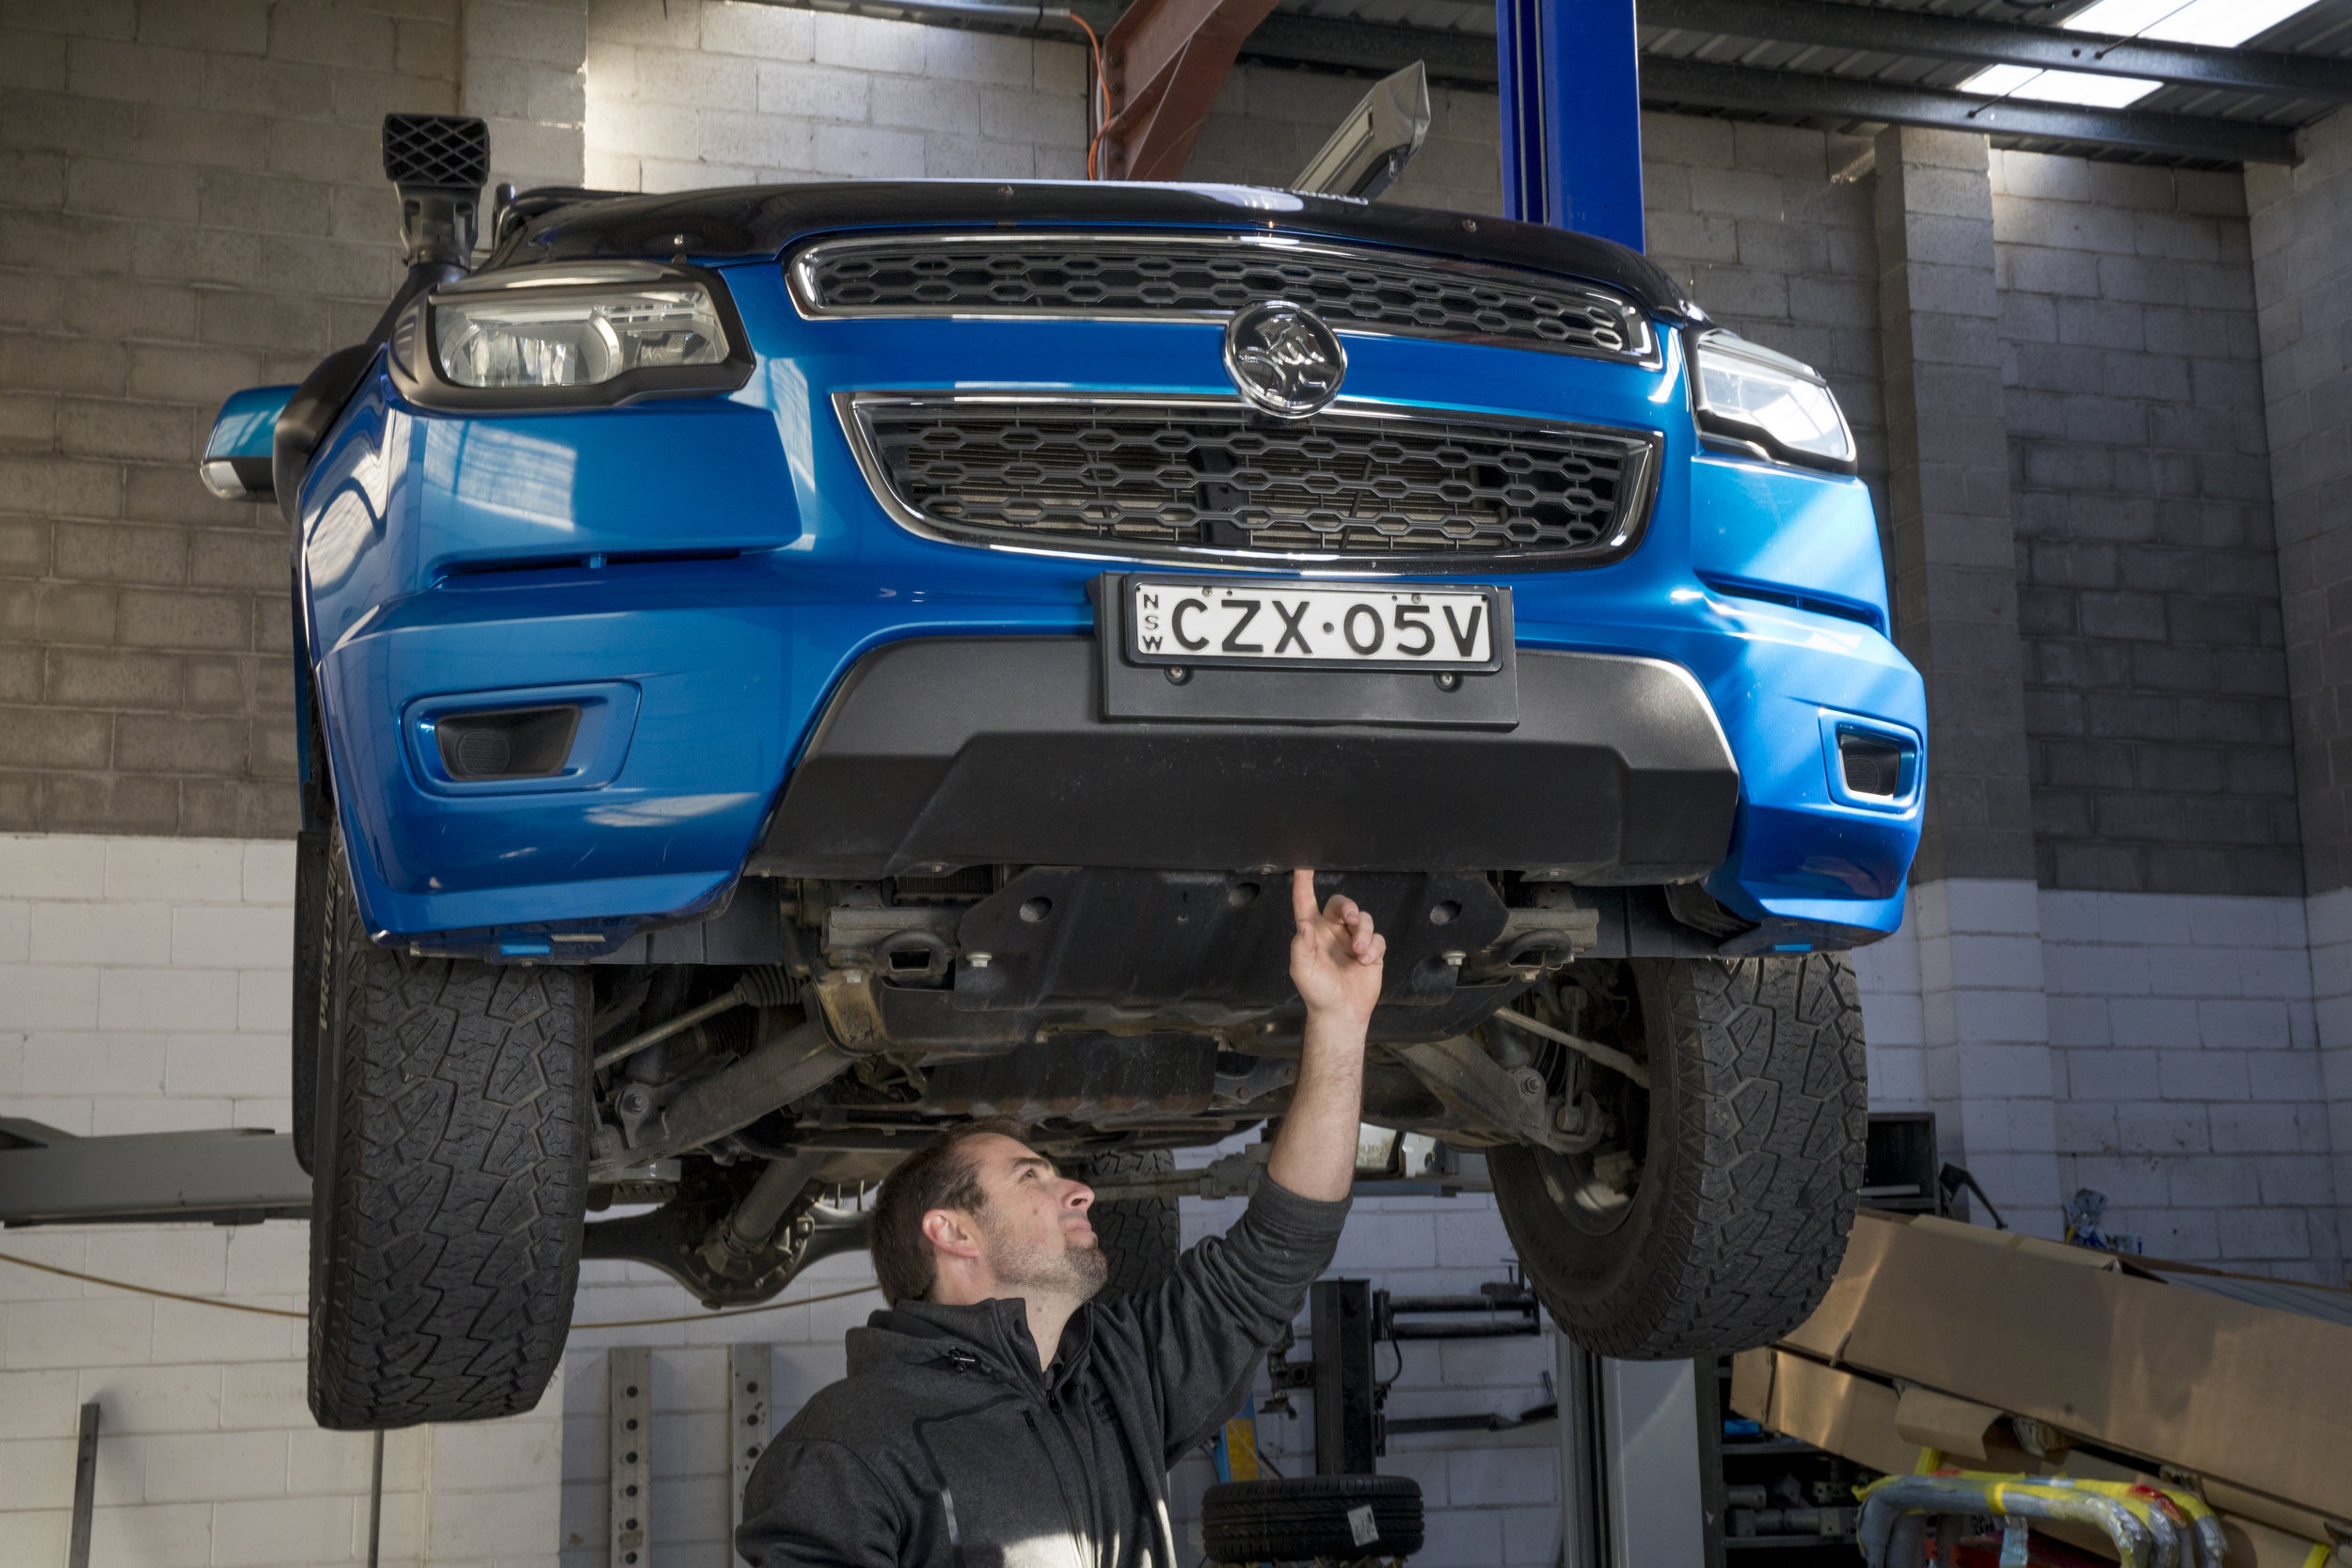 4 WHEEL DRIVE SPECIALIST - We are equipped with a dedicated state of the art heavy duty European 4WD Auto Body Alignment System.Most alignment systems are only made for cars, but our system has the genuine capacity to deliver repairs to all 4WD and light trucks that meet exacting manufacturer's specifications. Click here for your FREE QUOTE